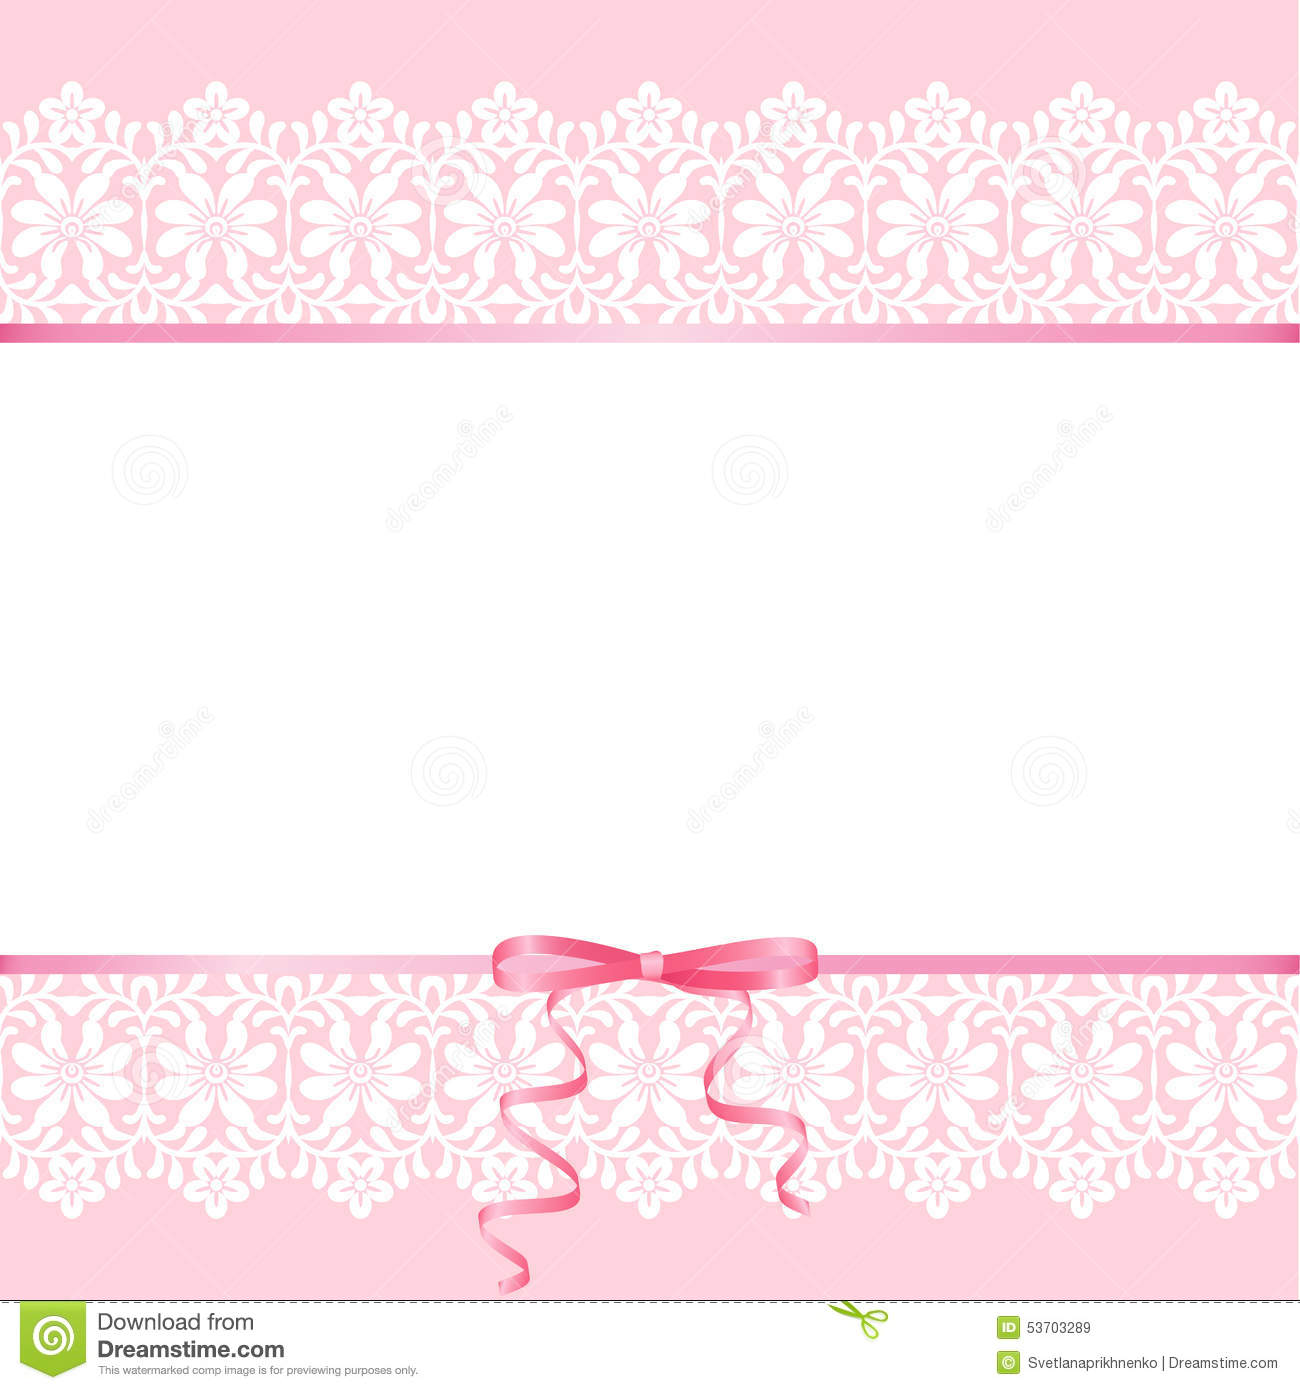 Lace On Pink Background Stock Vector - Image: 53703289